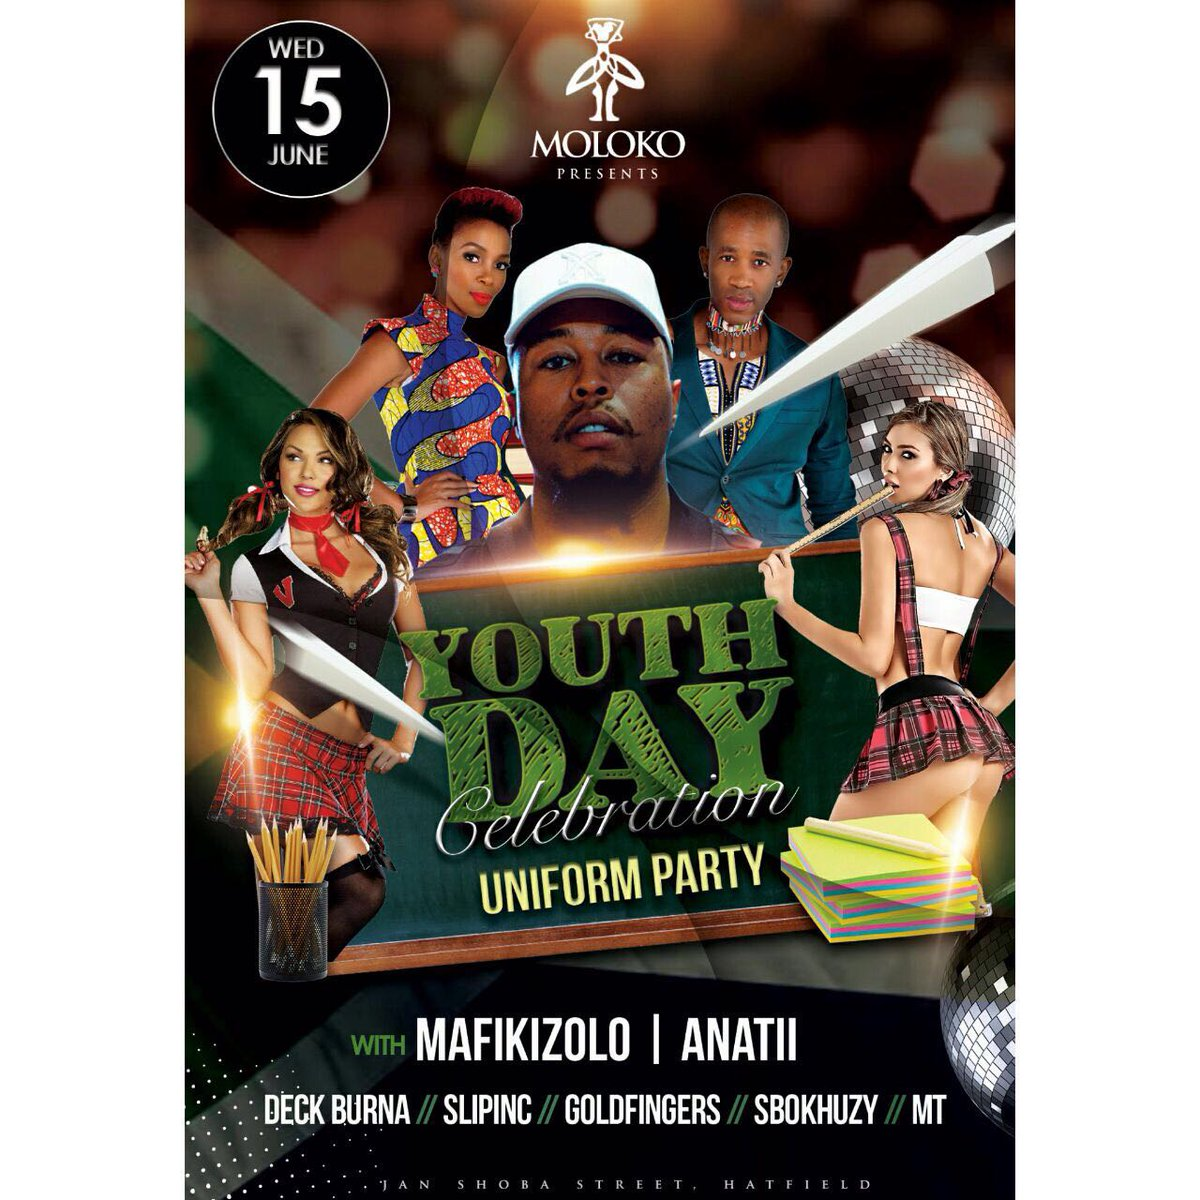 #YouthDayCelebration @molokopretoria this Wednesday. Featuring @MafikizoloSA & @ANATII LIVE. Join the parry bro. https://t.co/xODyMftBWP